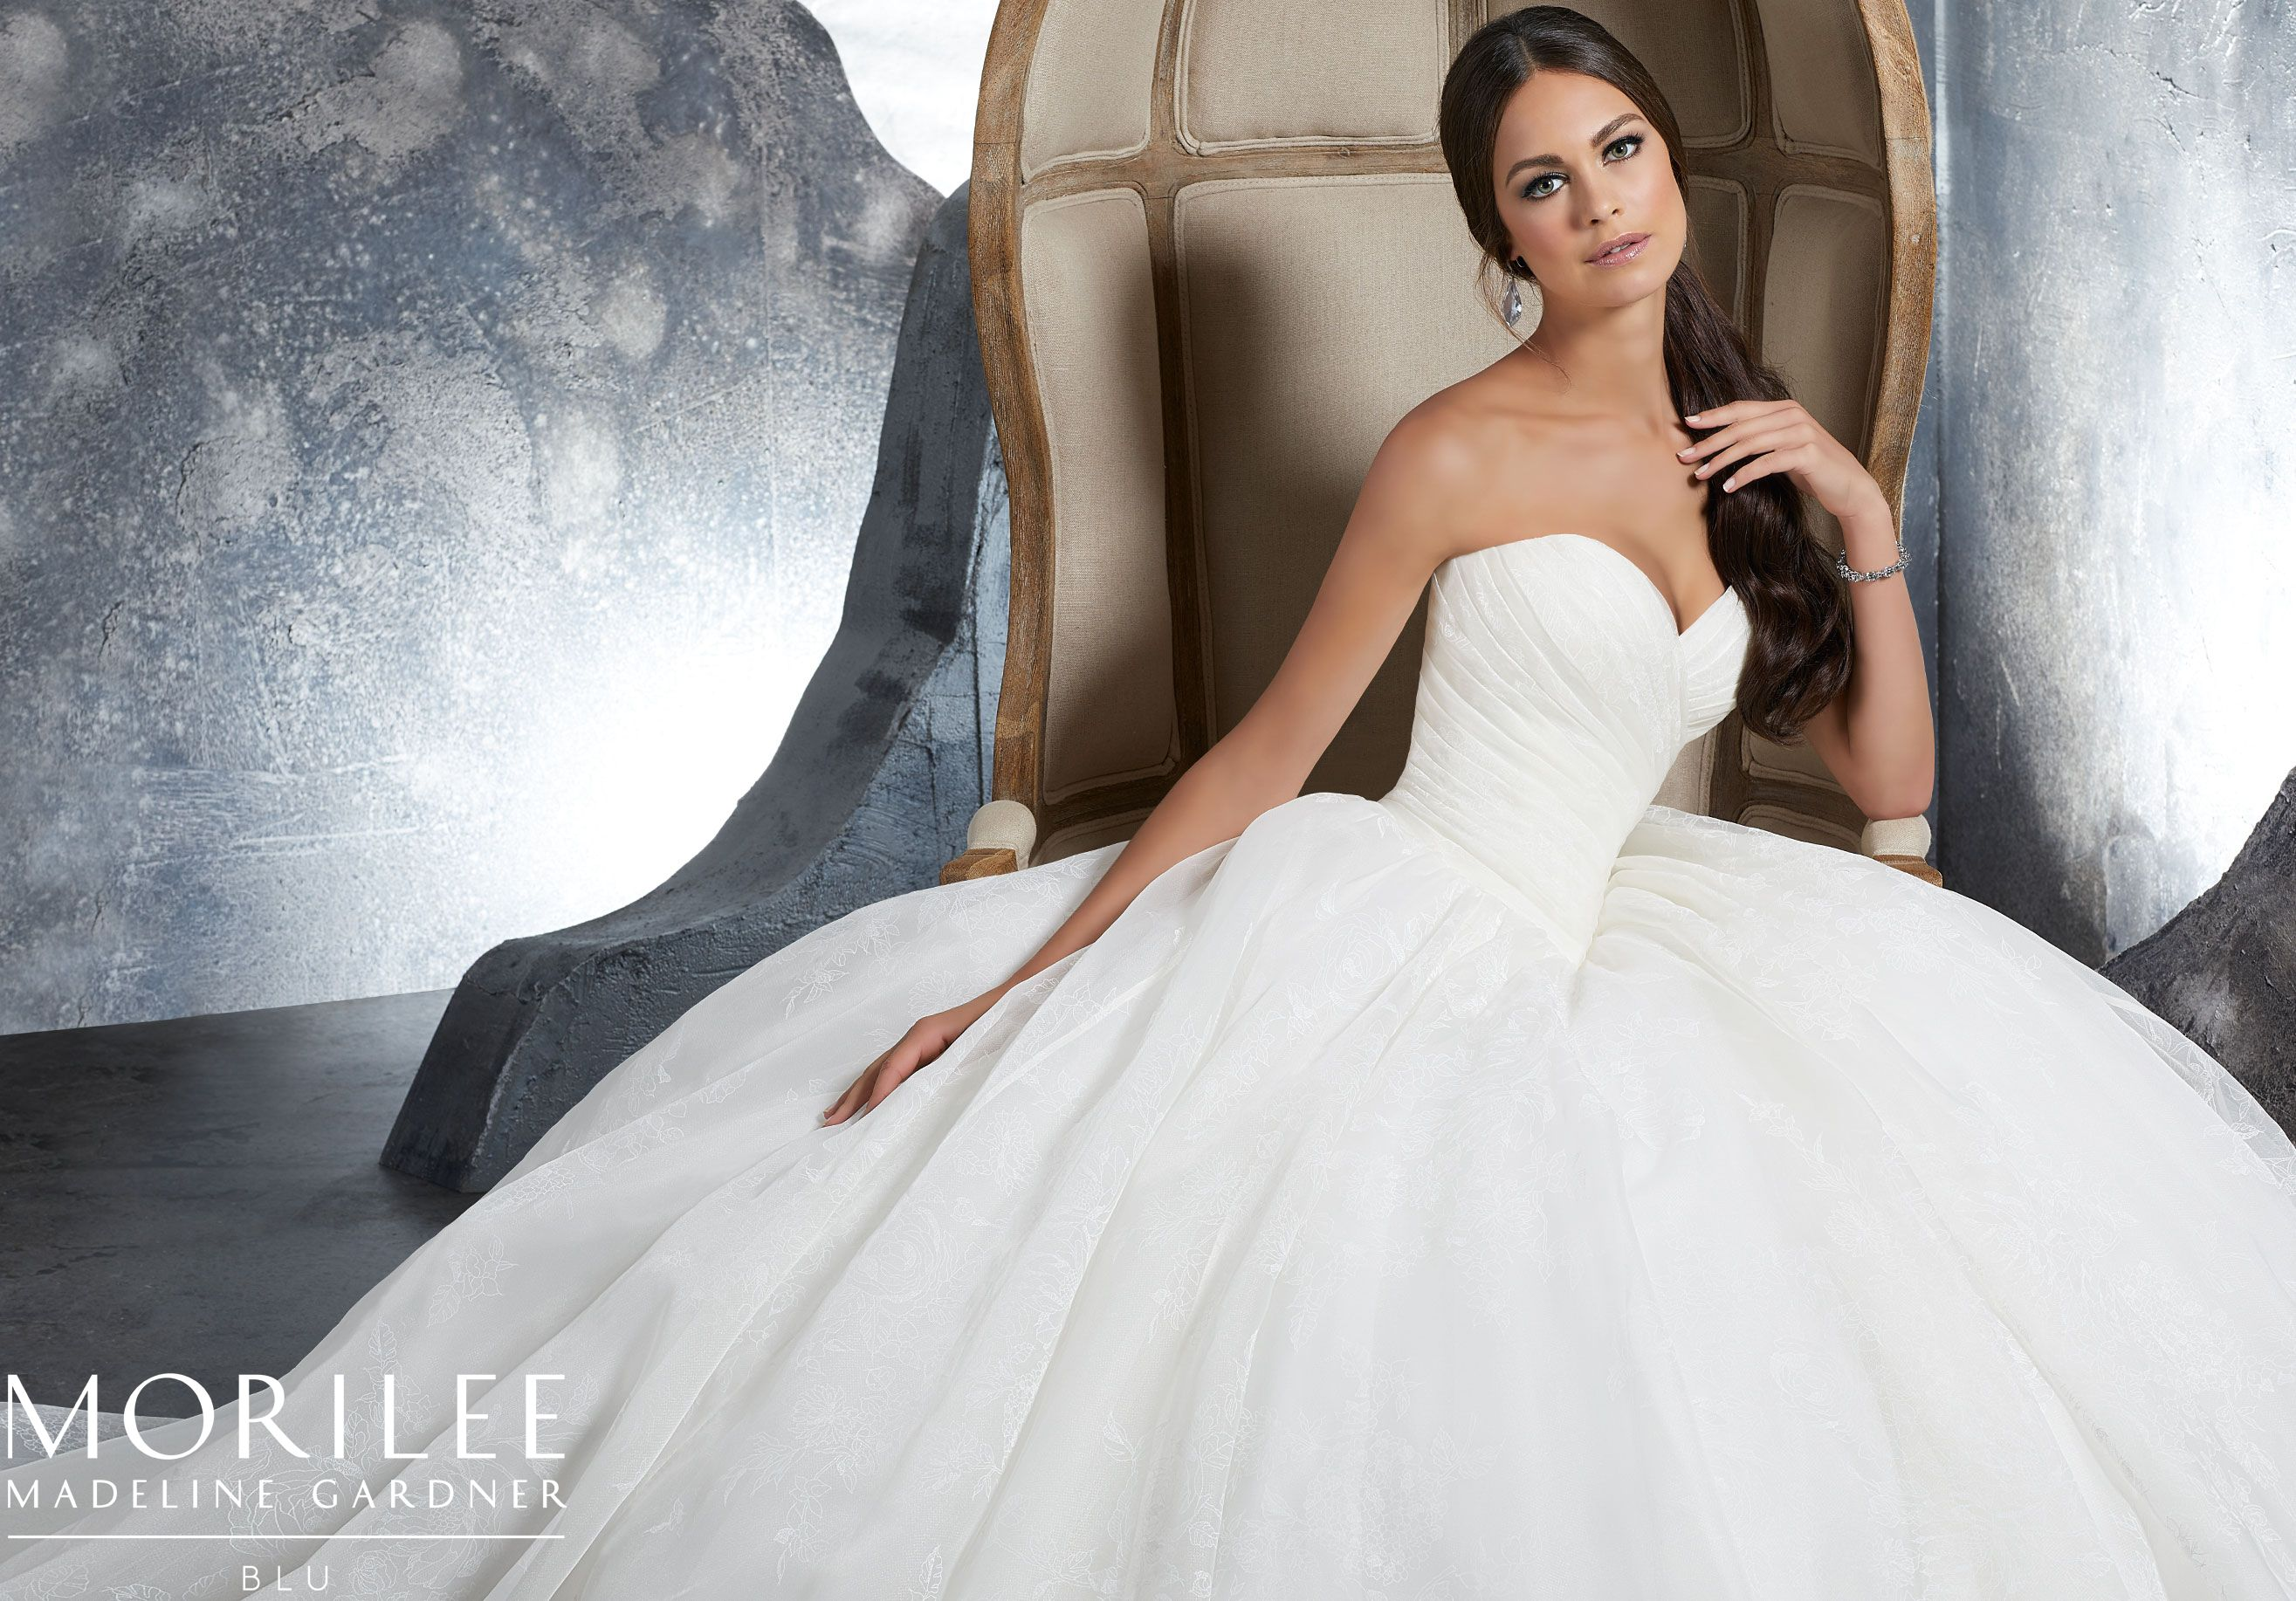 Mori lee madeline gardner wedding dress  Morilee  Madeline Gardner Kalinda Style   Draped Floral